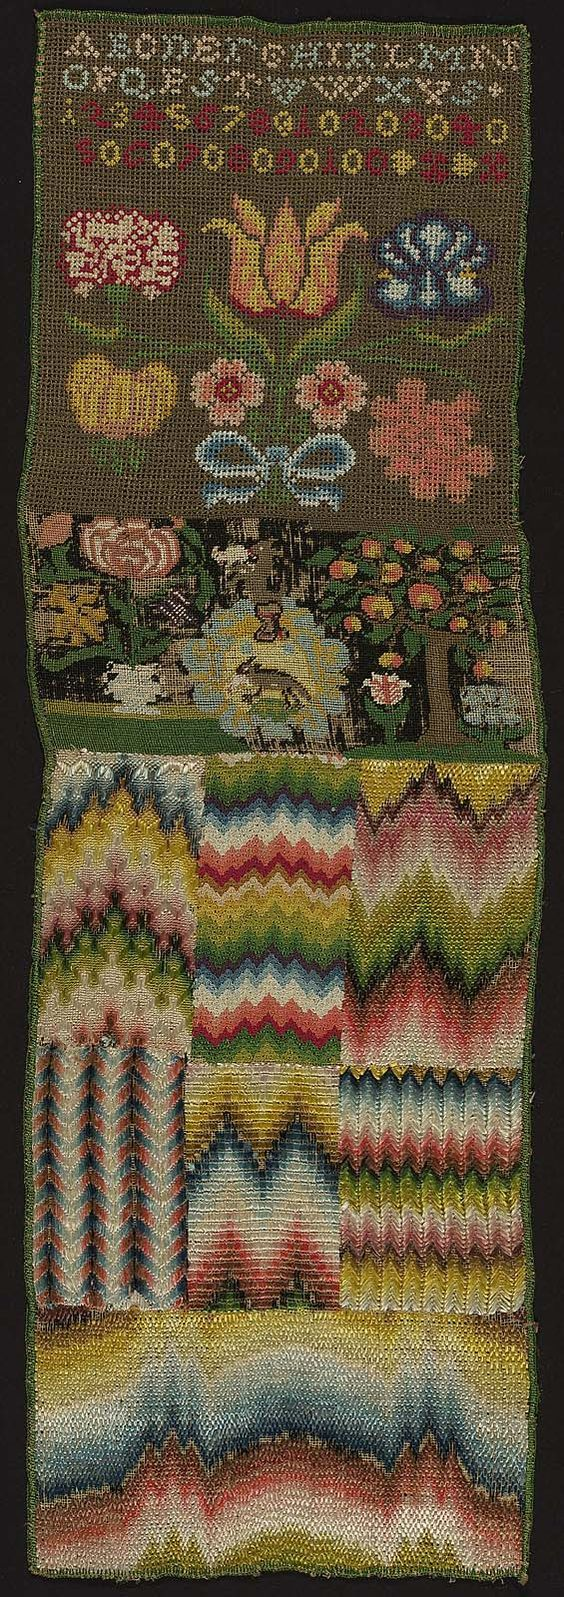 Across the top the alphabet and numbers. Below, various flowers, a rectangle bearing animals, a tree and blossoms. The lower half divided into rectangular areas bearing chevron motifs worked in various stitches. Polychrome silk yarns on linen ground. Condition good; black rotted out in spots. Stitches: Florentine, rococo, tent, two-sided Italian cross, upright gobelin, slanting gobelin.